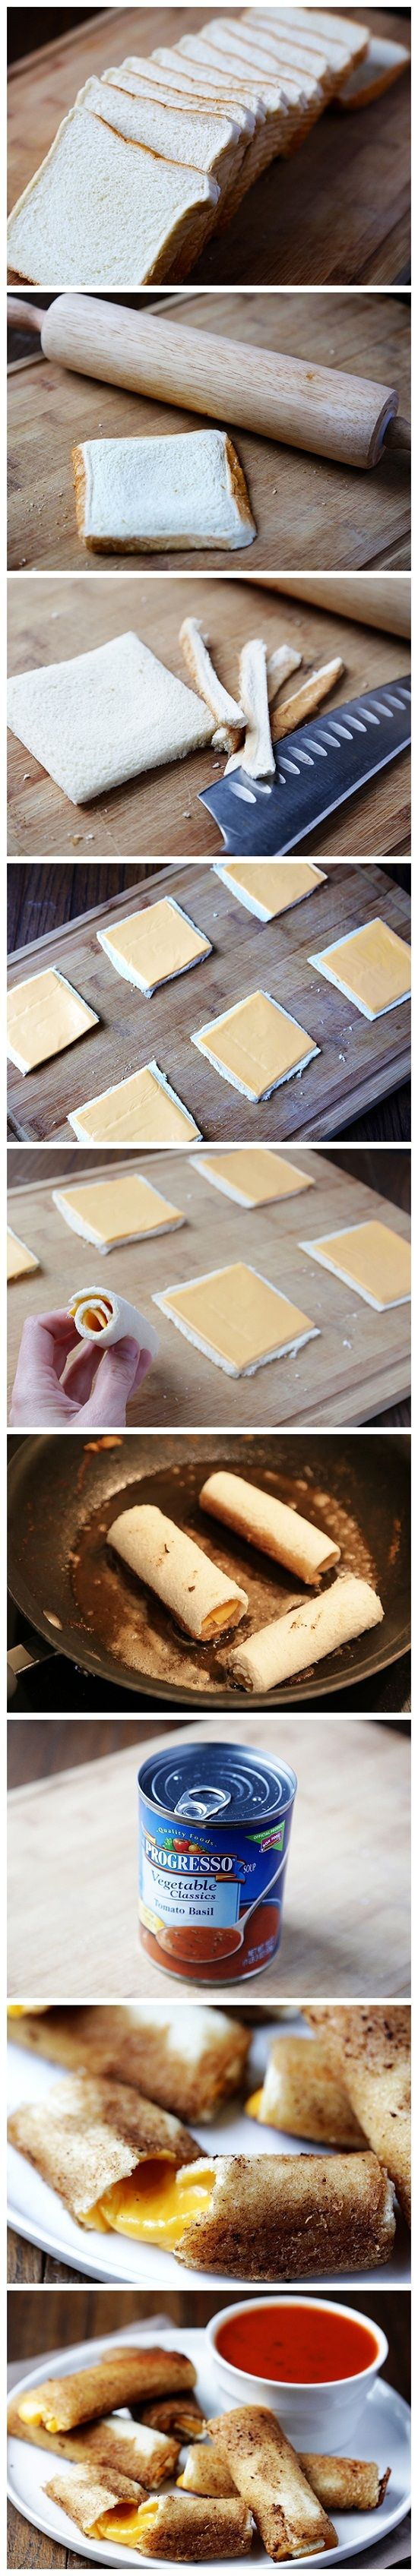 Grilled cheese rolls.